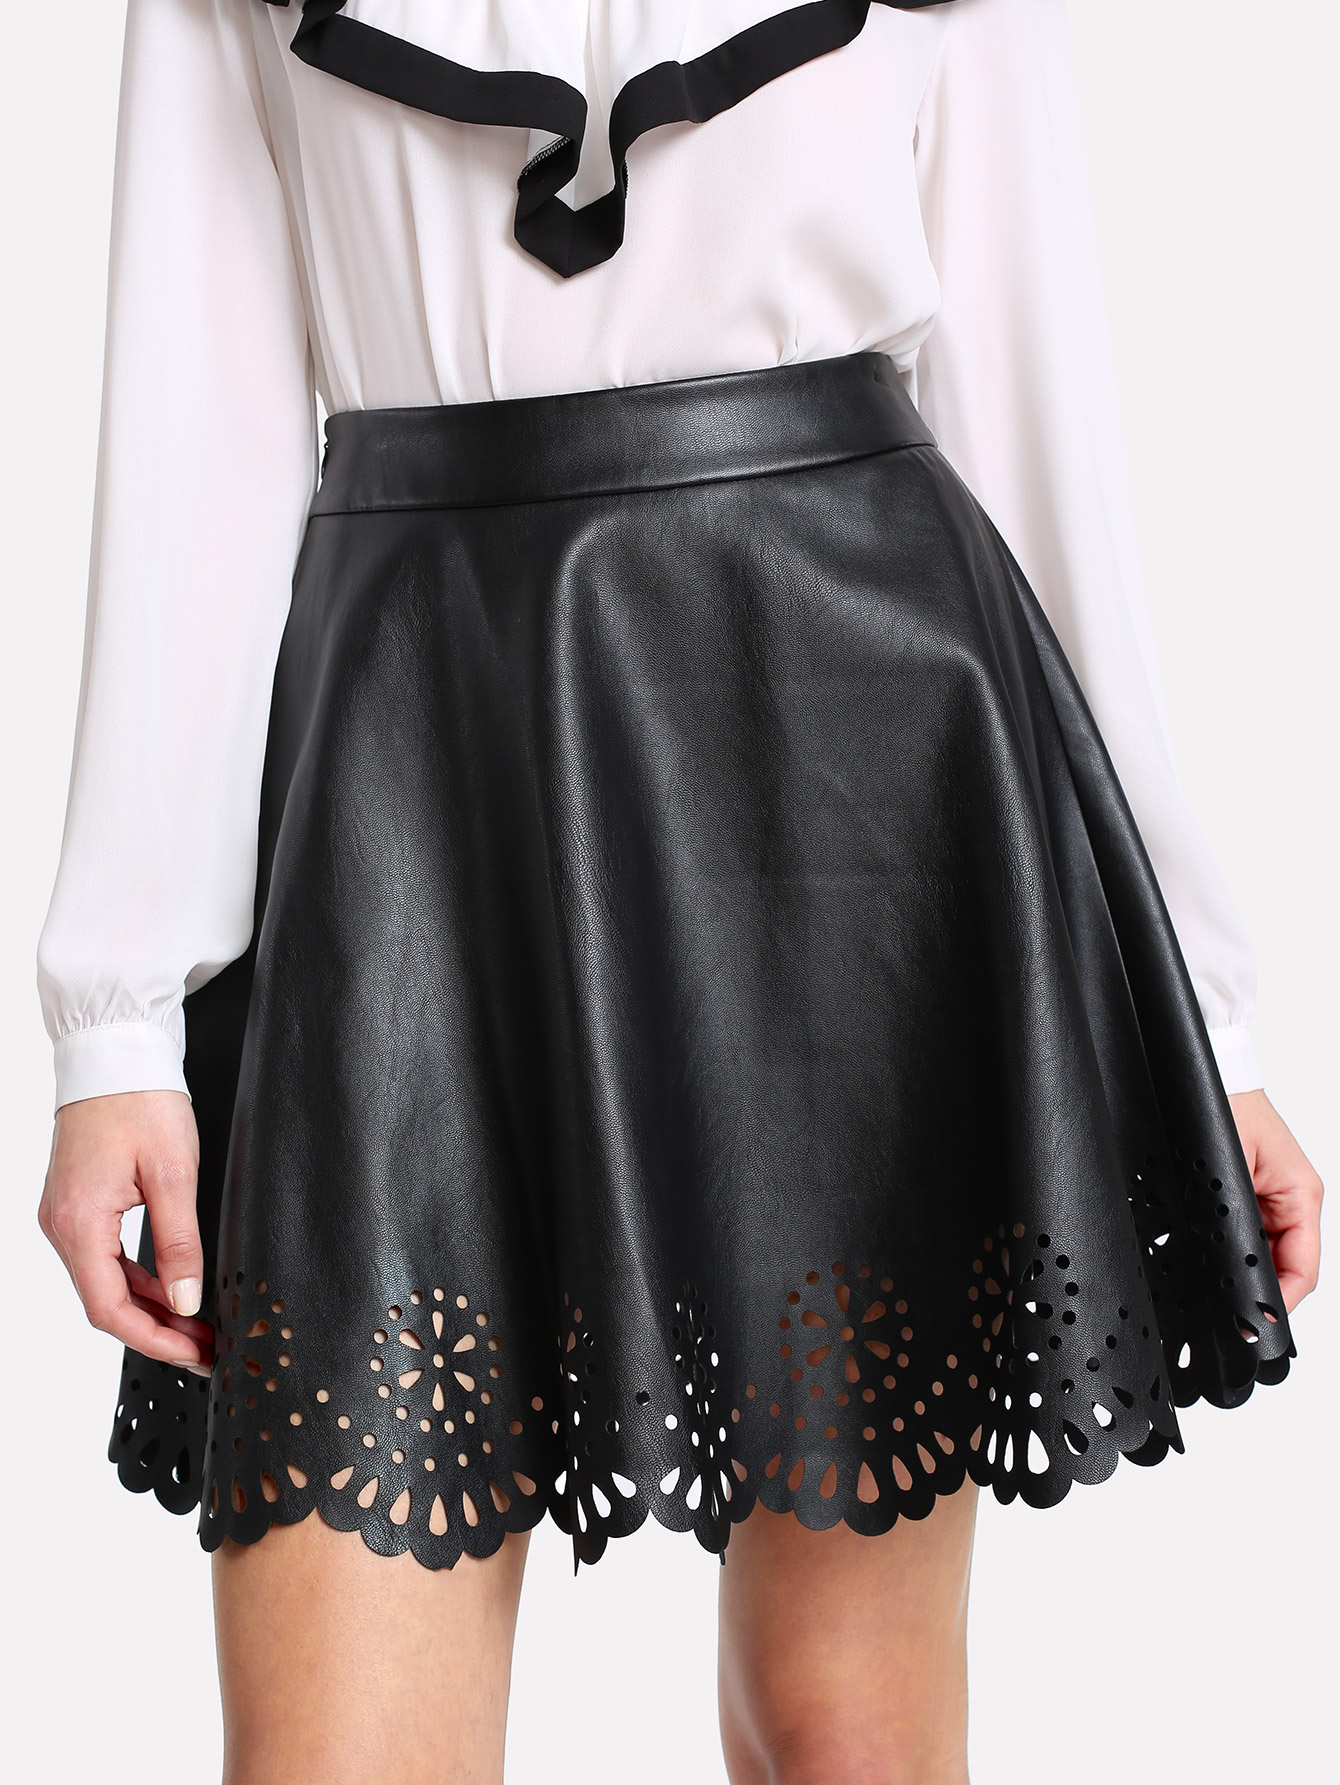 Scallop Laser Cut Coated Skirt scallop laser cut form fitting dress